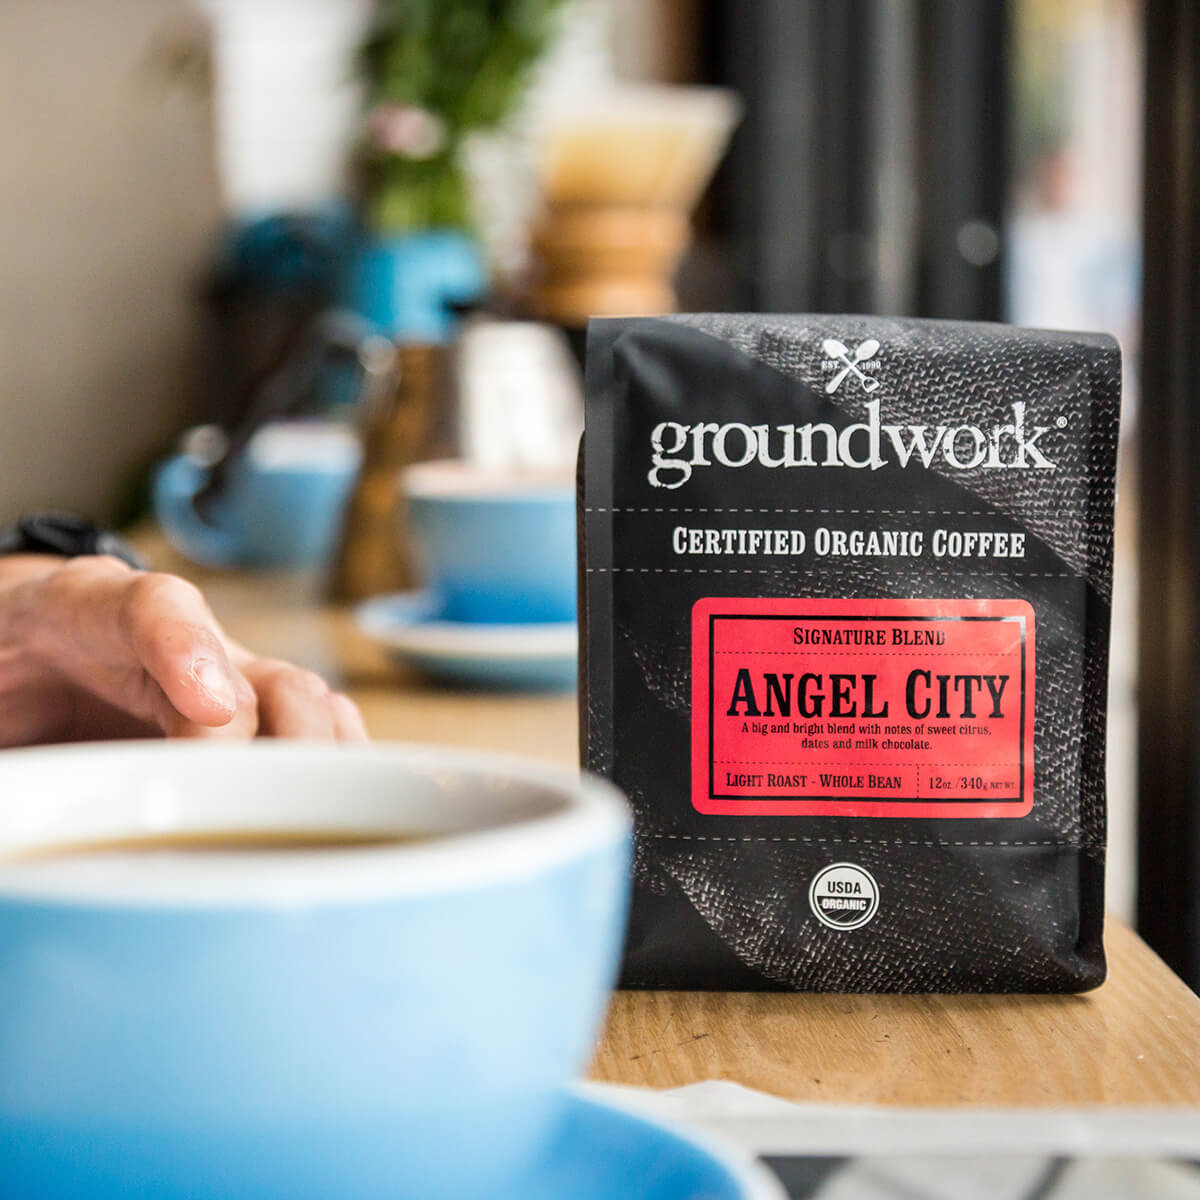 bag of Groundwork's Angel City coffee on table with blue cup